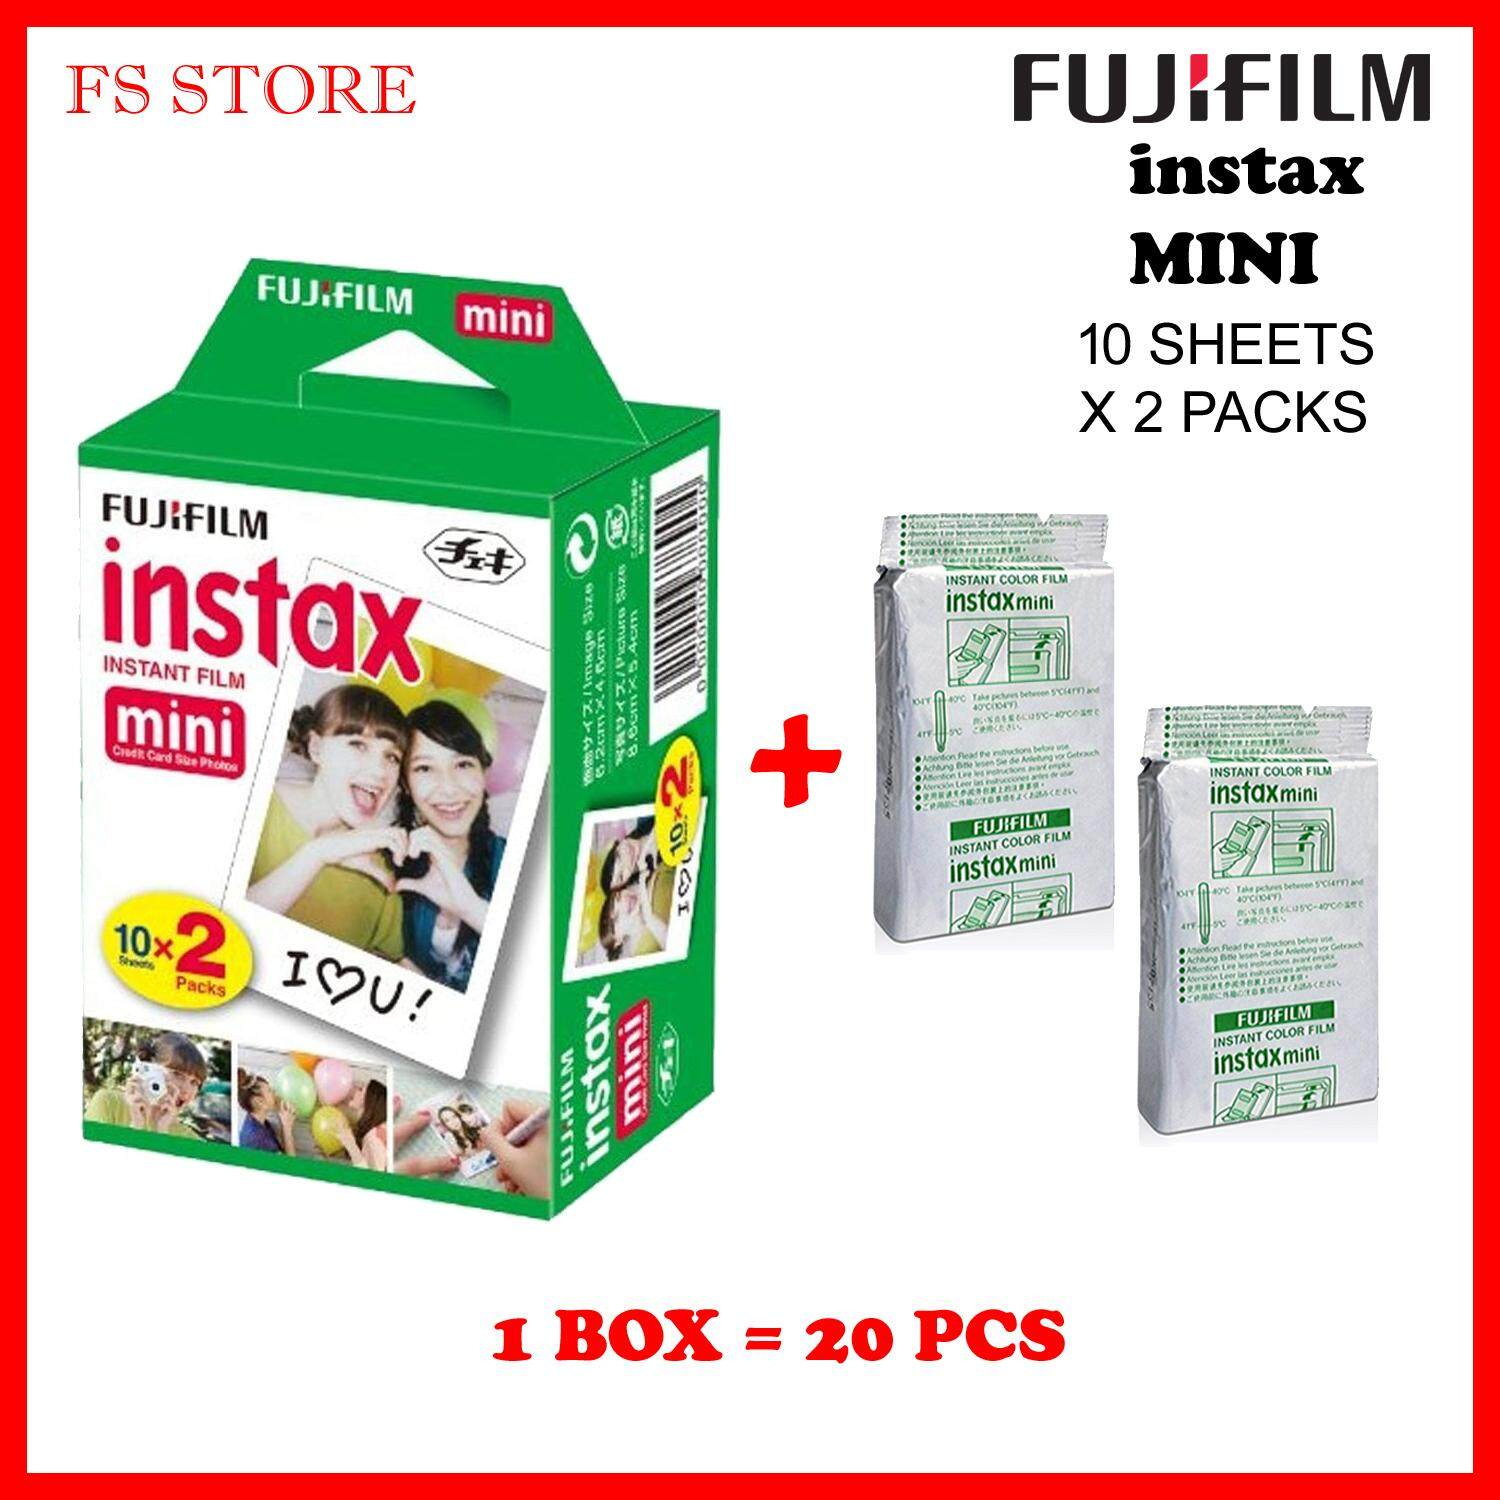 Instax Mini Film Twin Pack (20pcs) Fujifilm Expired 2020 By Fs Store.